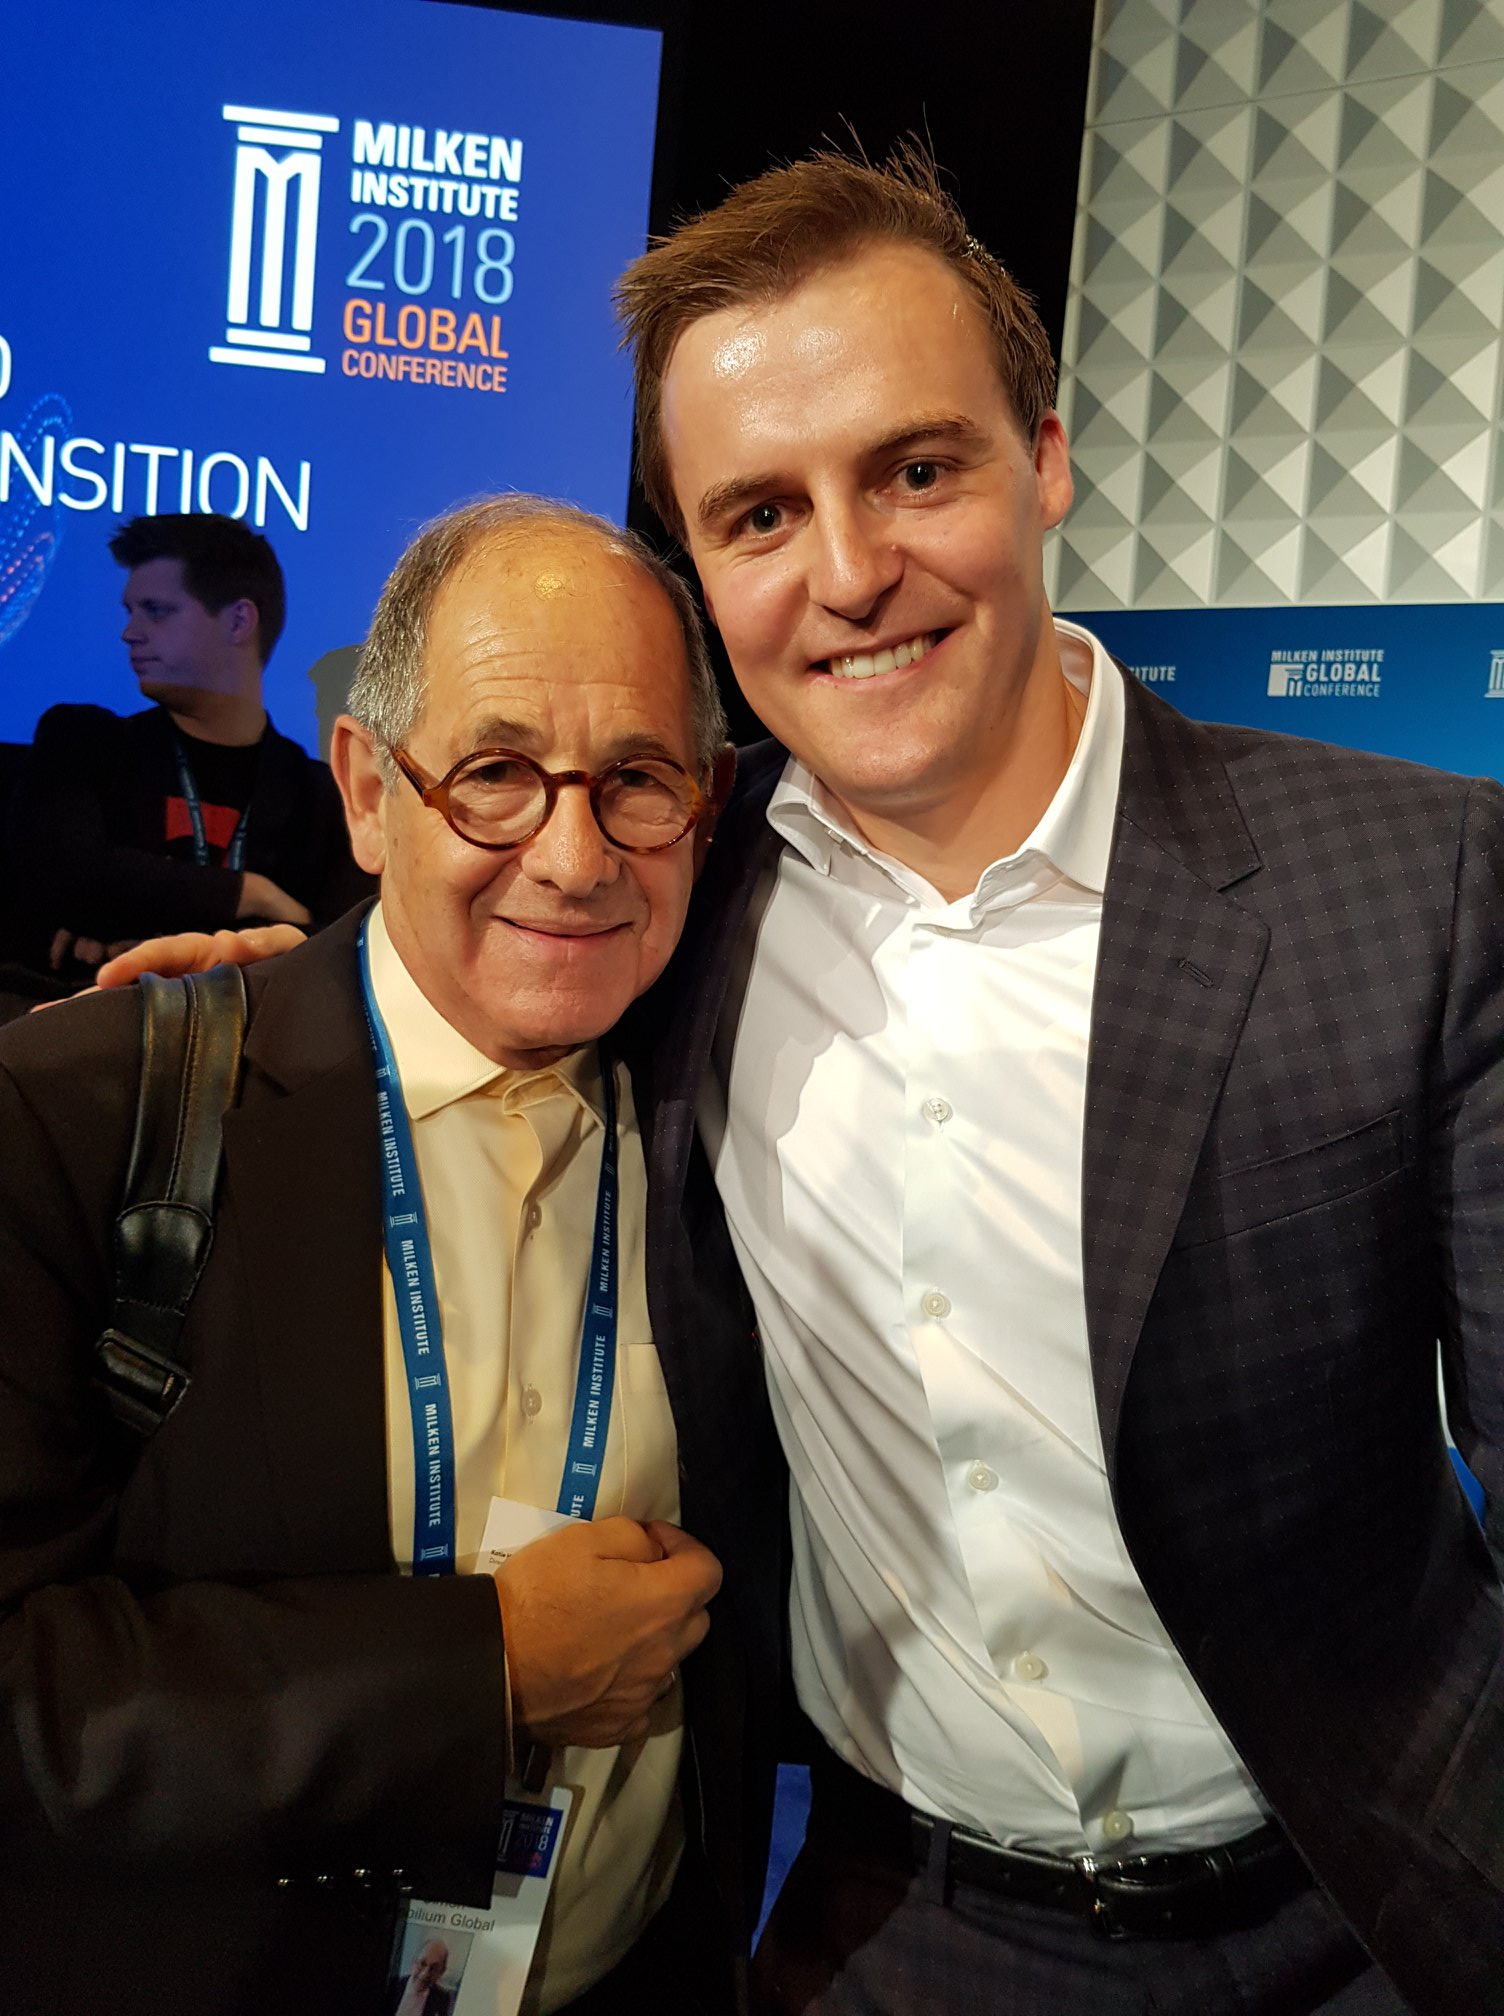 Los Angeles – Milken Global Conference